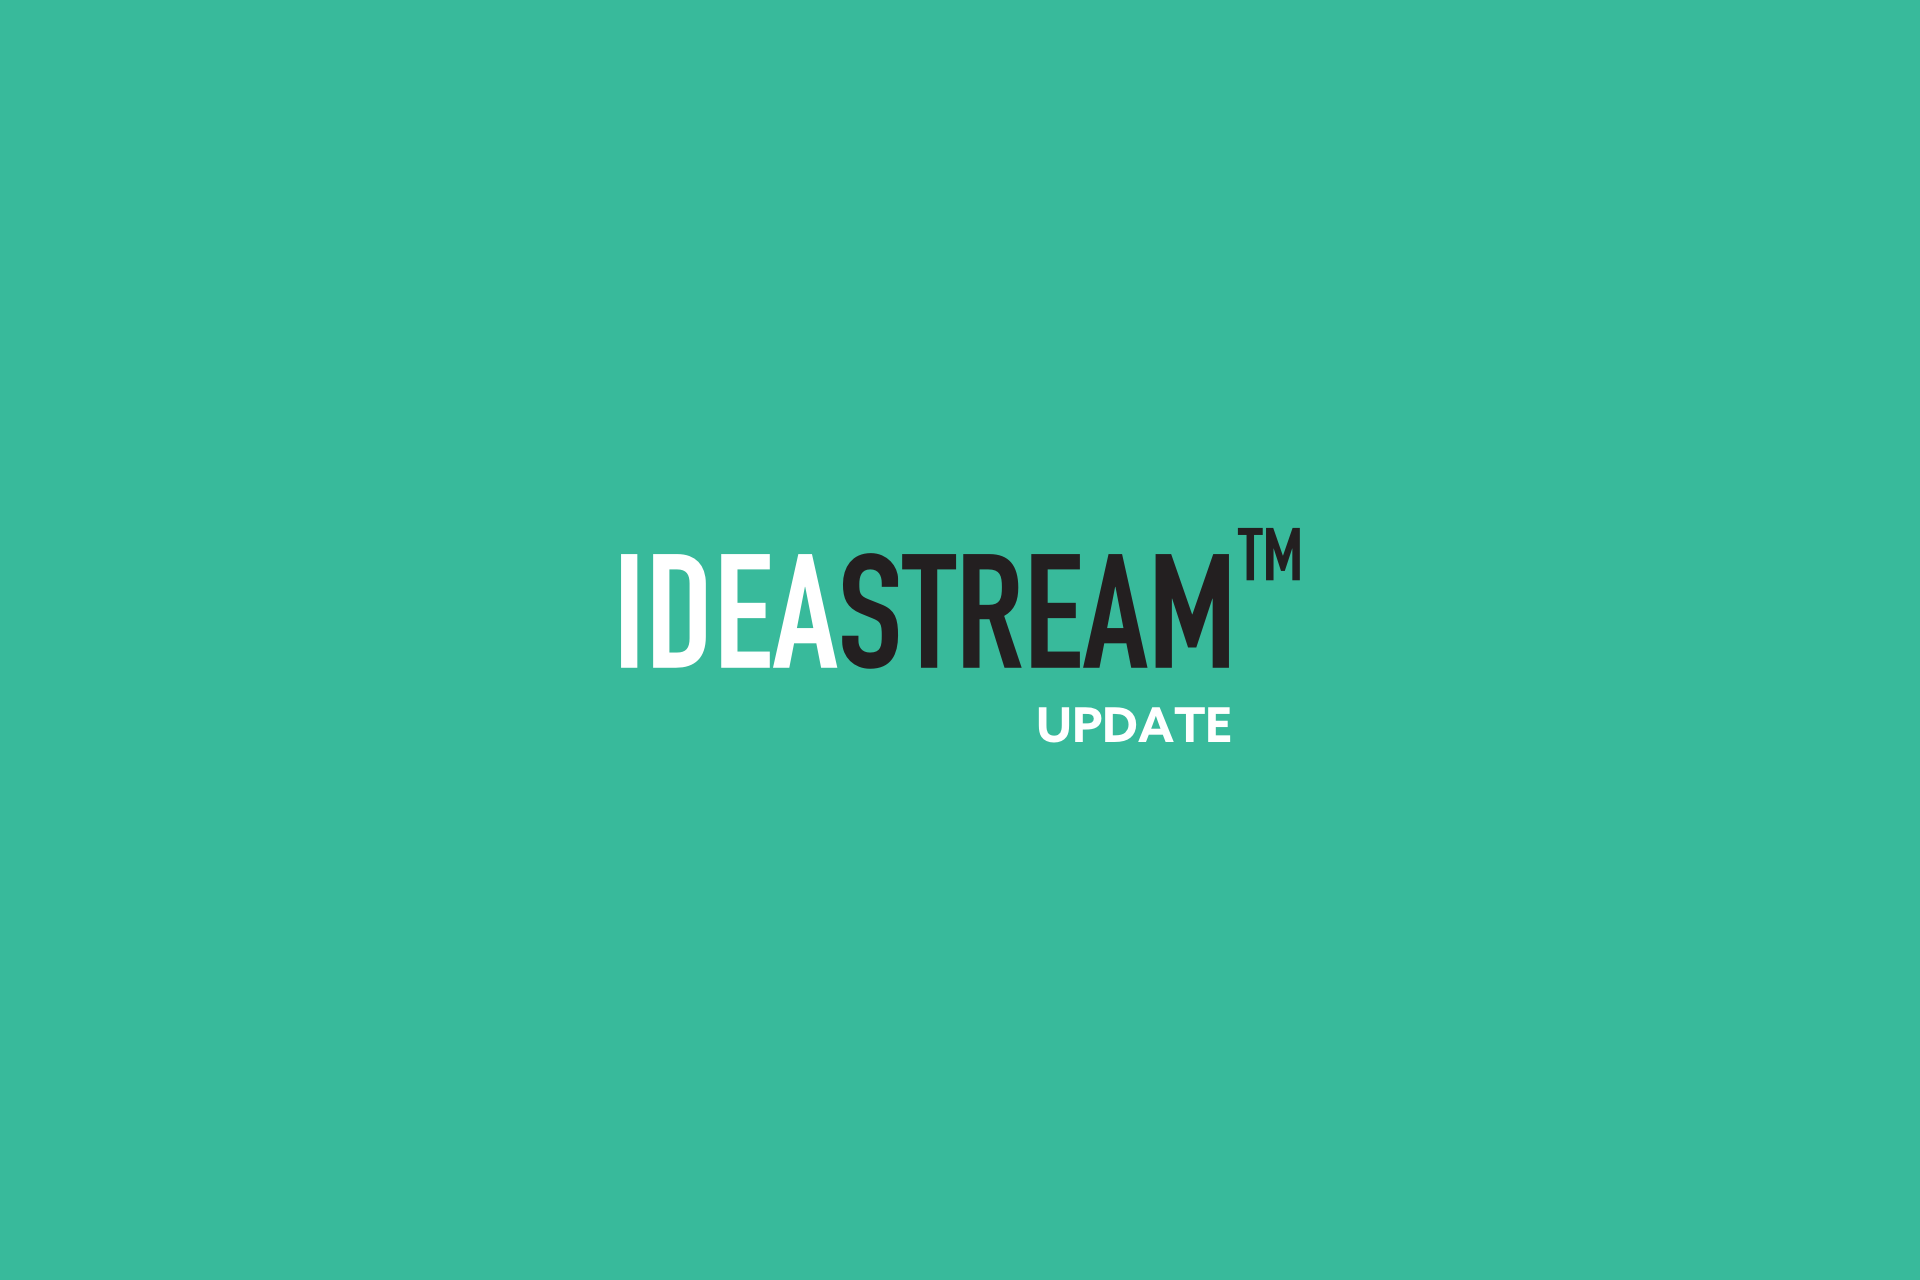 Ideastream™ Feature Update - New Diary Tool*